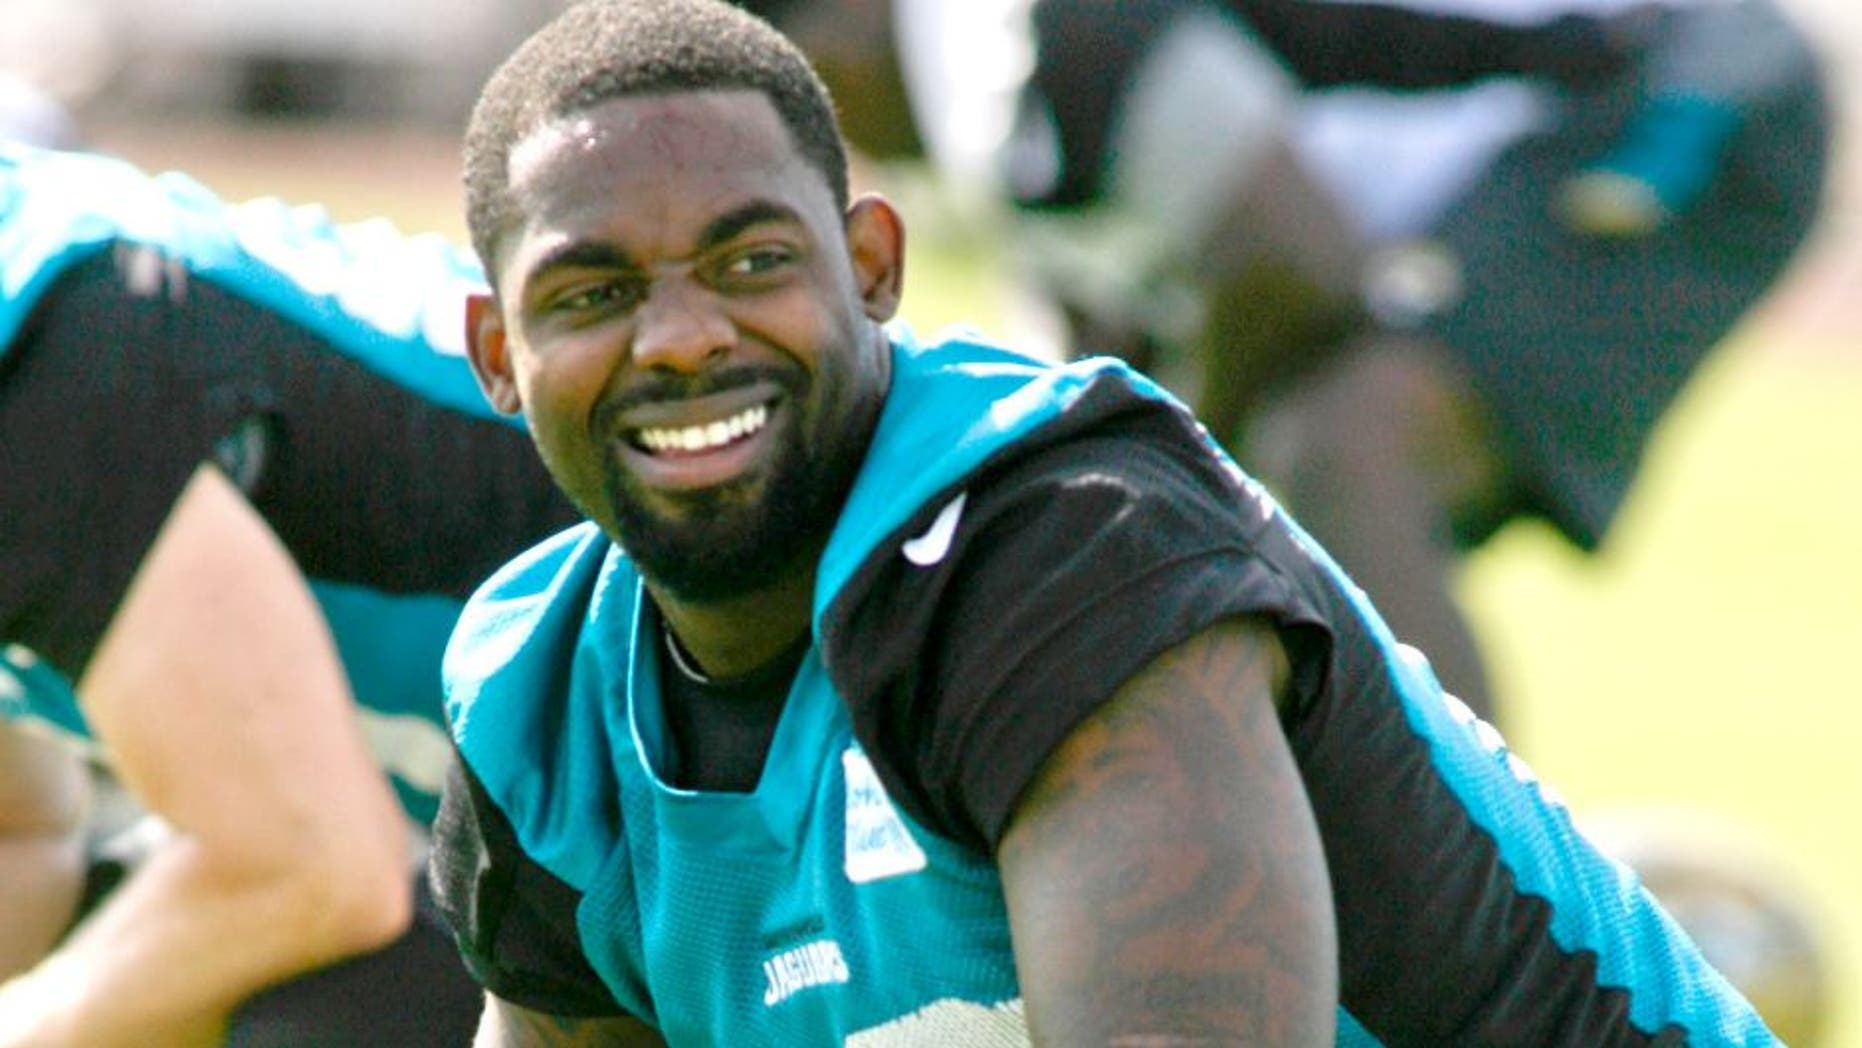 May 28, 2015; Jacksonville, FL, USA; Jacksonville Jaguars wide receiver Arrelious Benn (12) smiles as he stretches during OTAs at the Florida Blue Health and Wellness Practice Fields. Mandatory Credit: Phil Sears-USA TODAY Sports